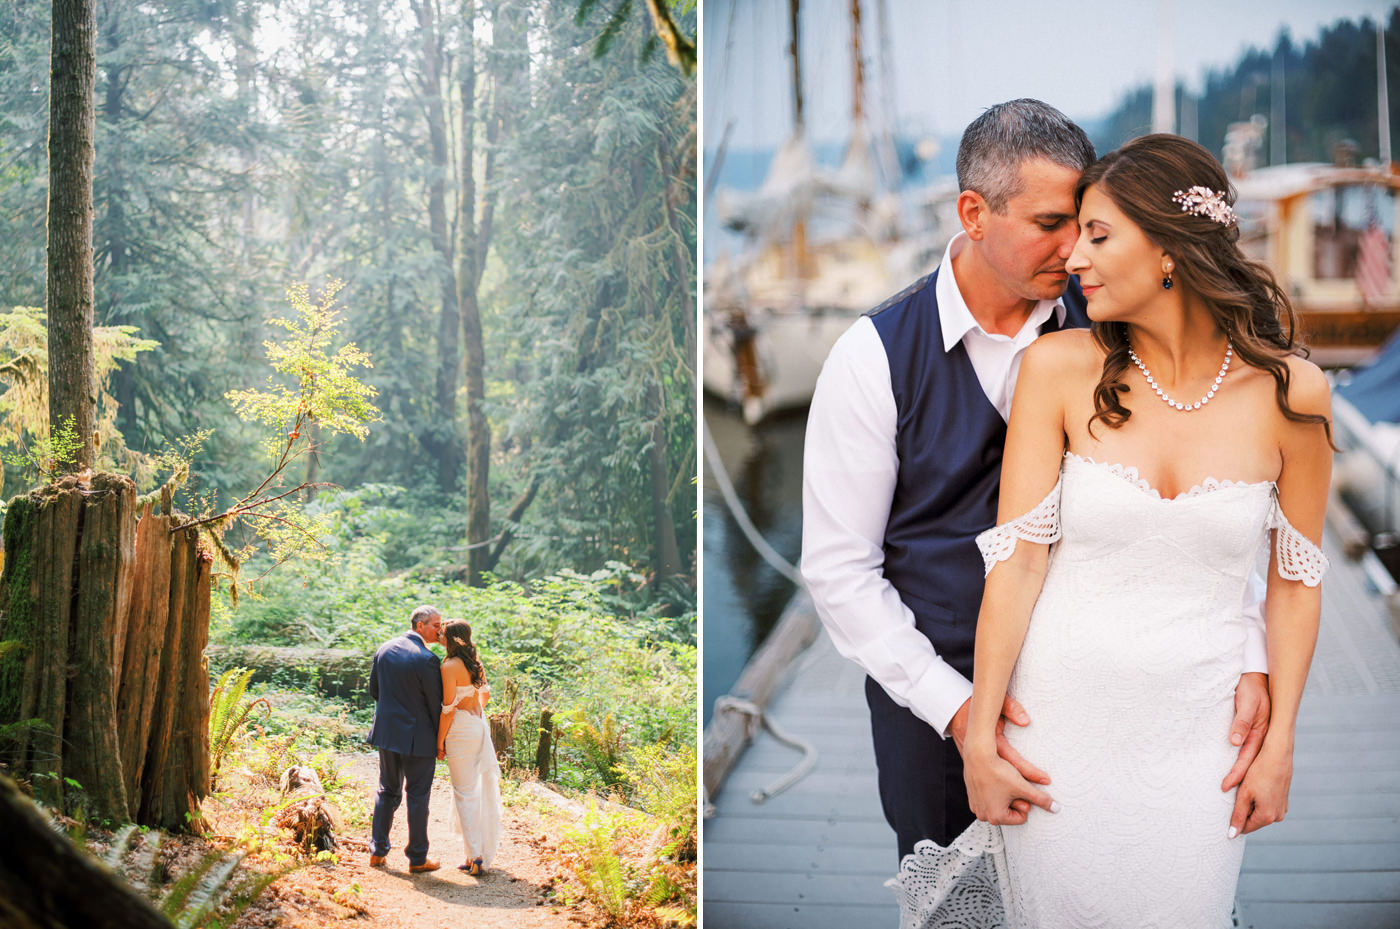 110-alderbrook-resort-wedding-portraits-by-best-seattle-photographer.jpg